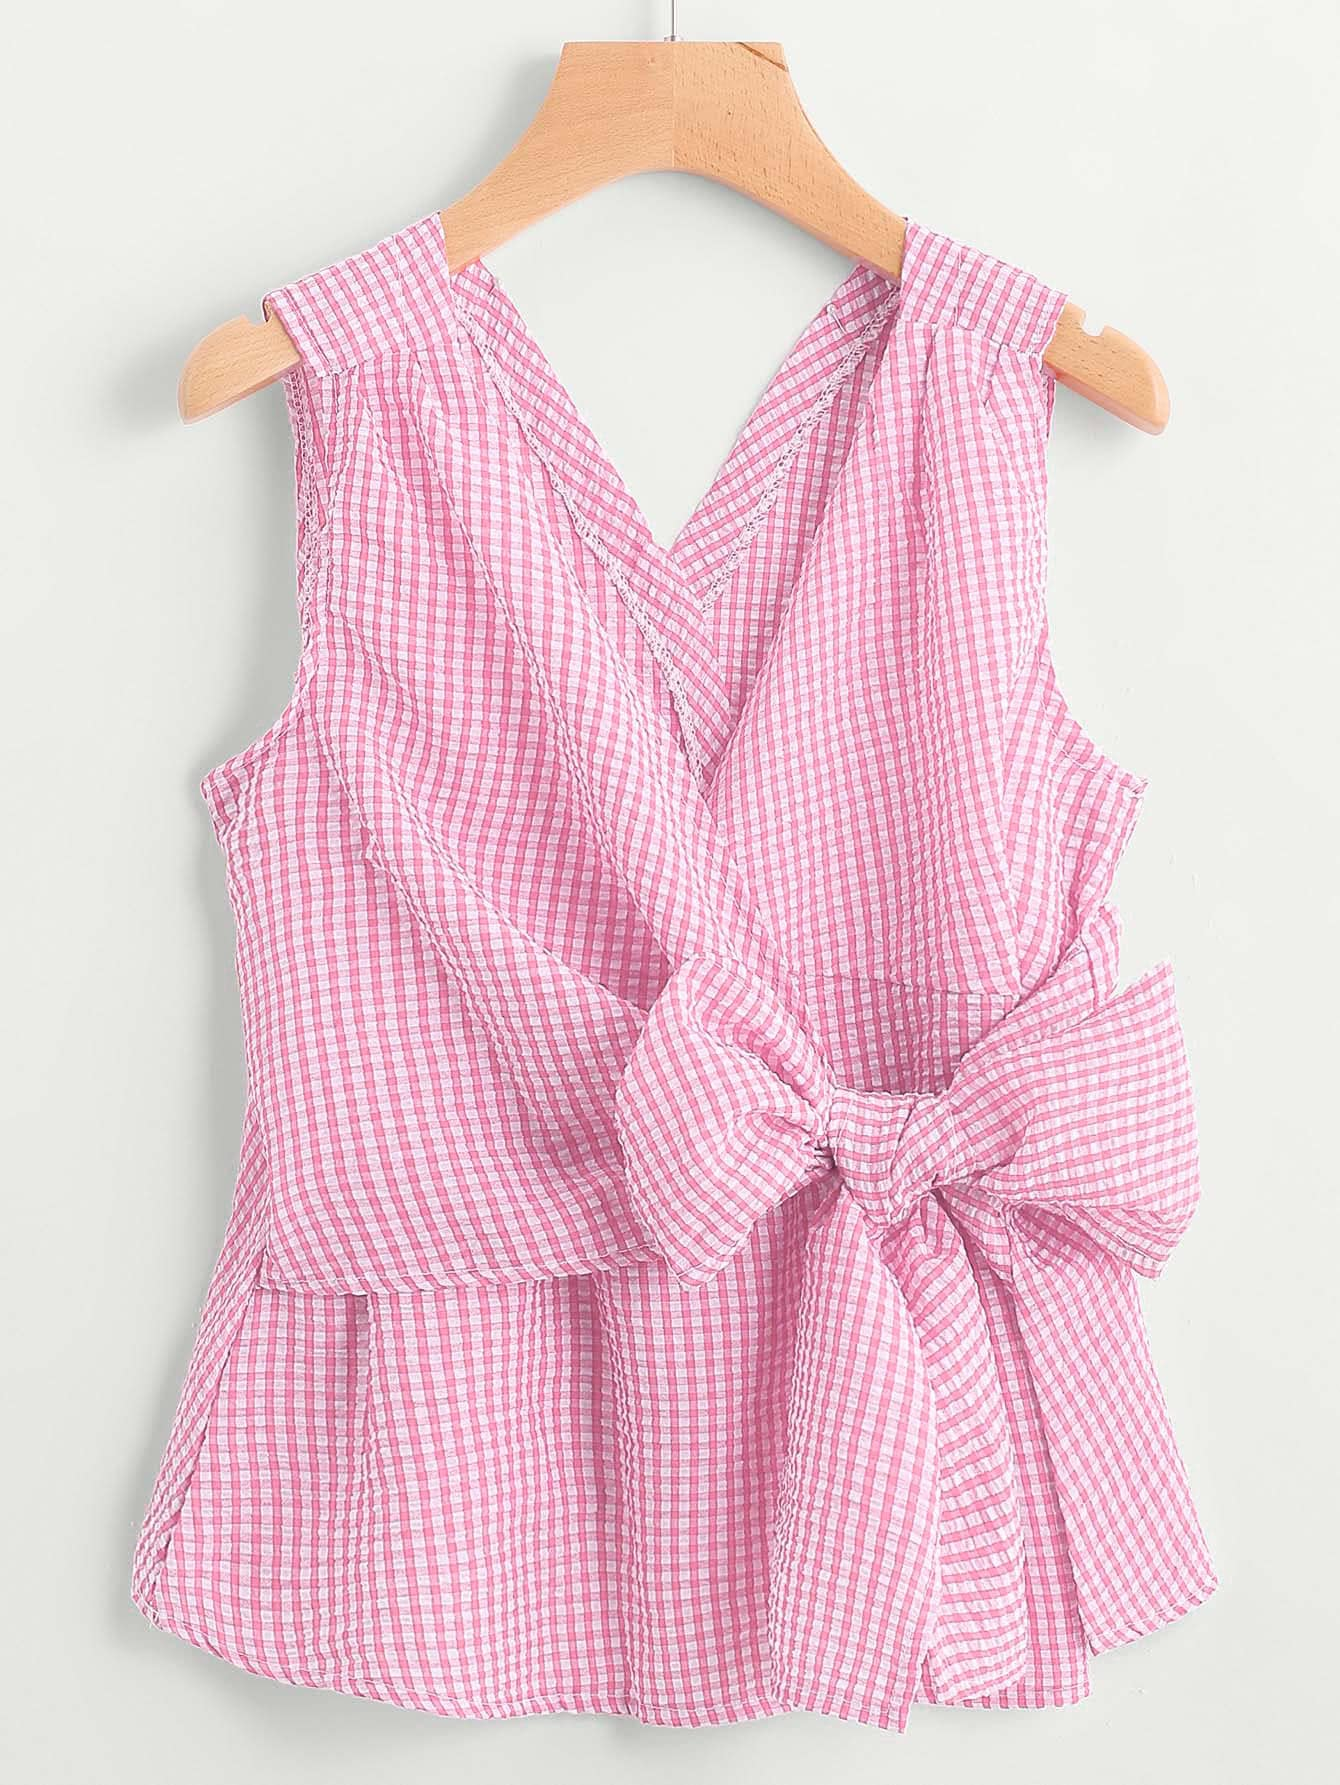 V-Neckline Bow Tie Detail Gingham Top pearl detail layered frill sleeve top